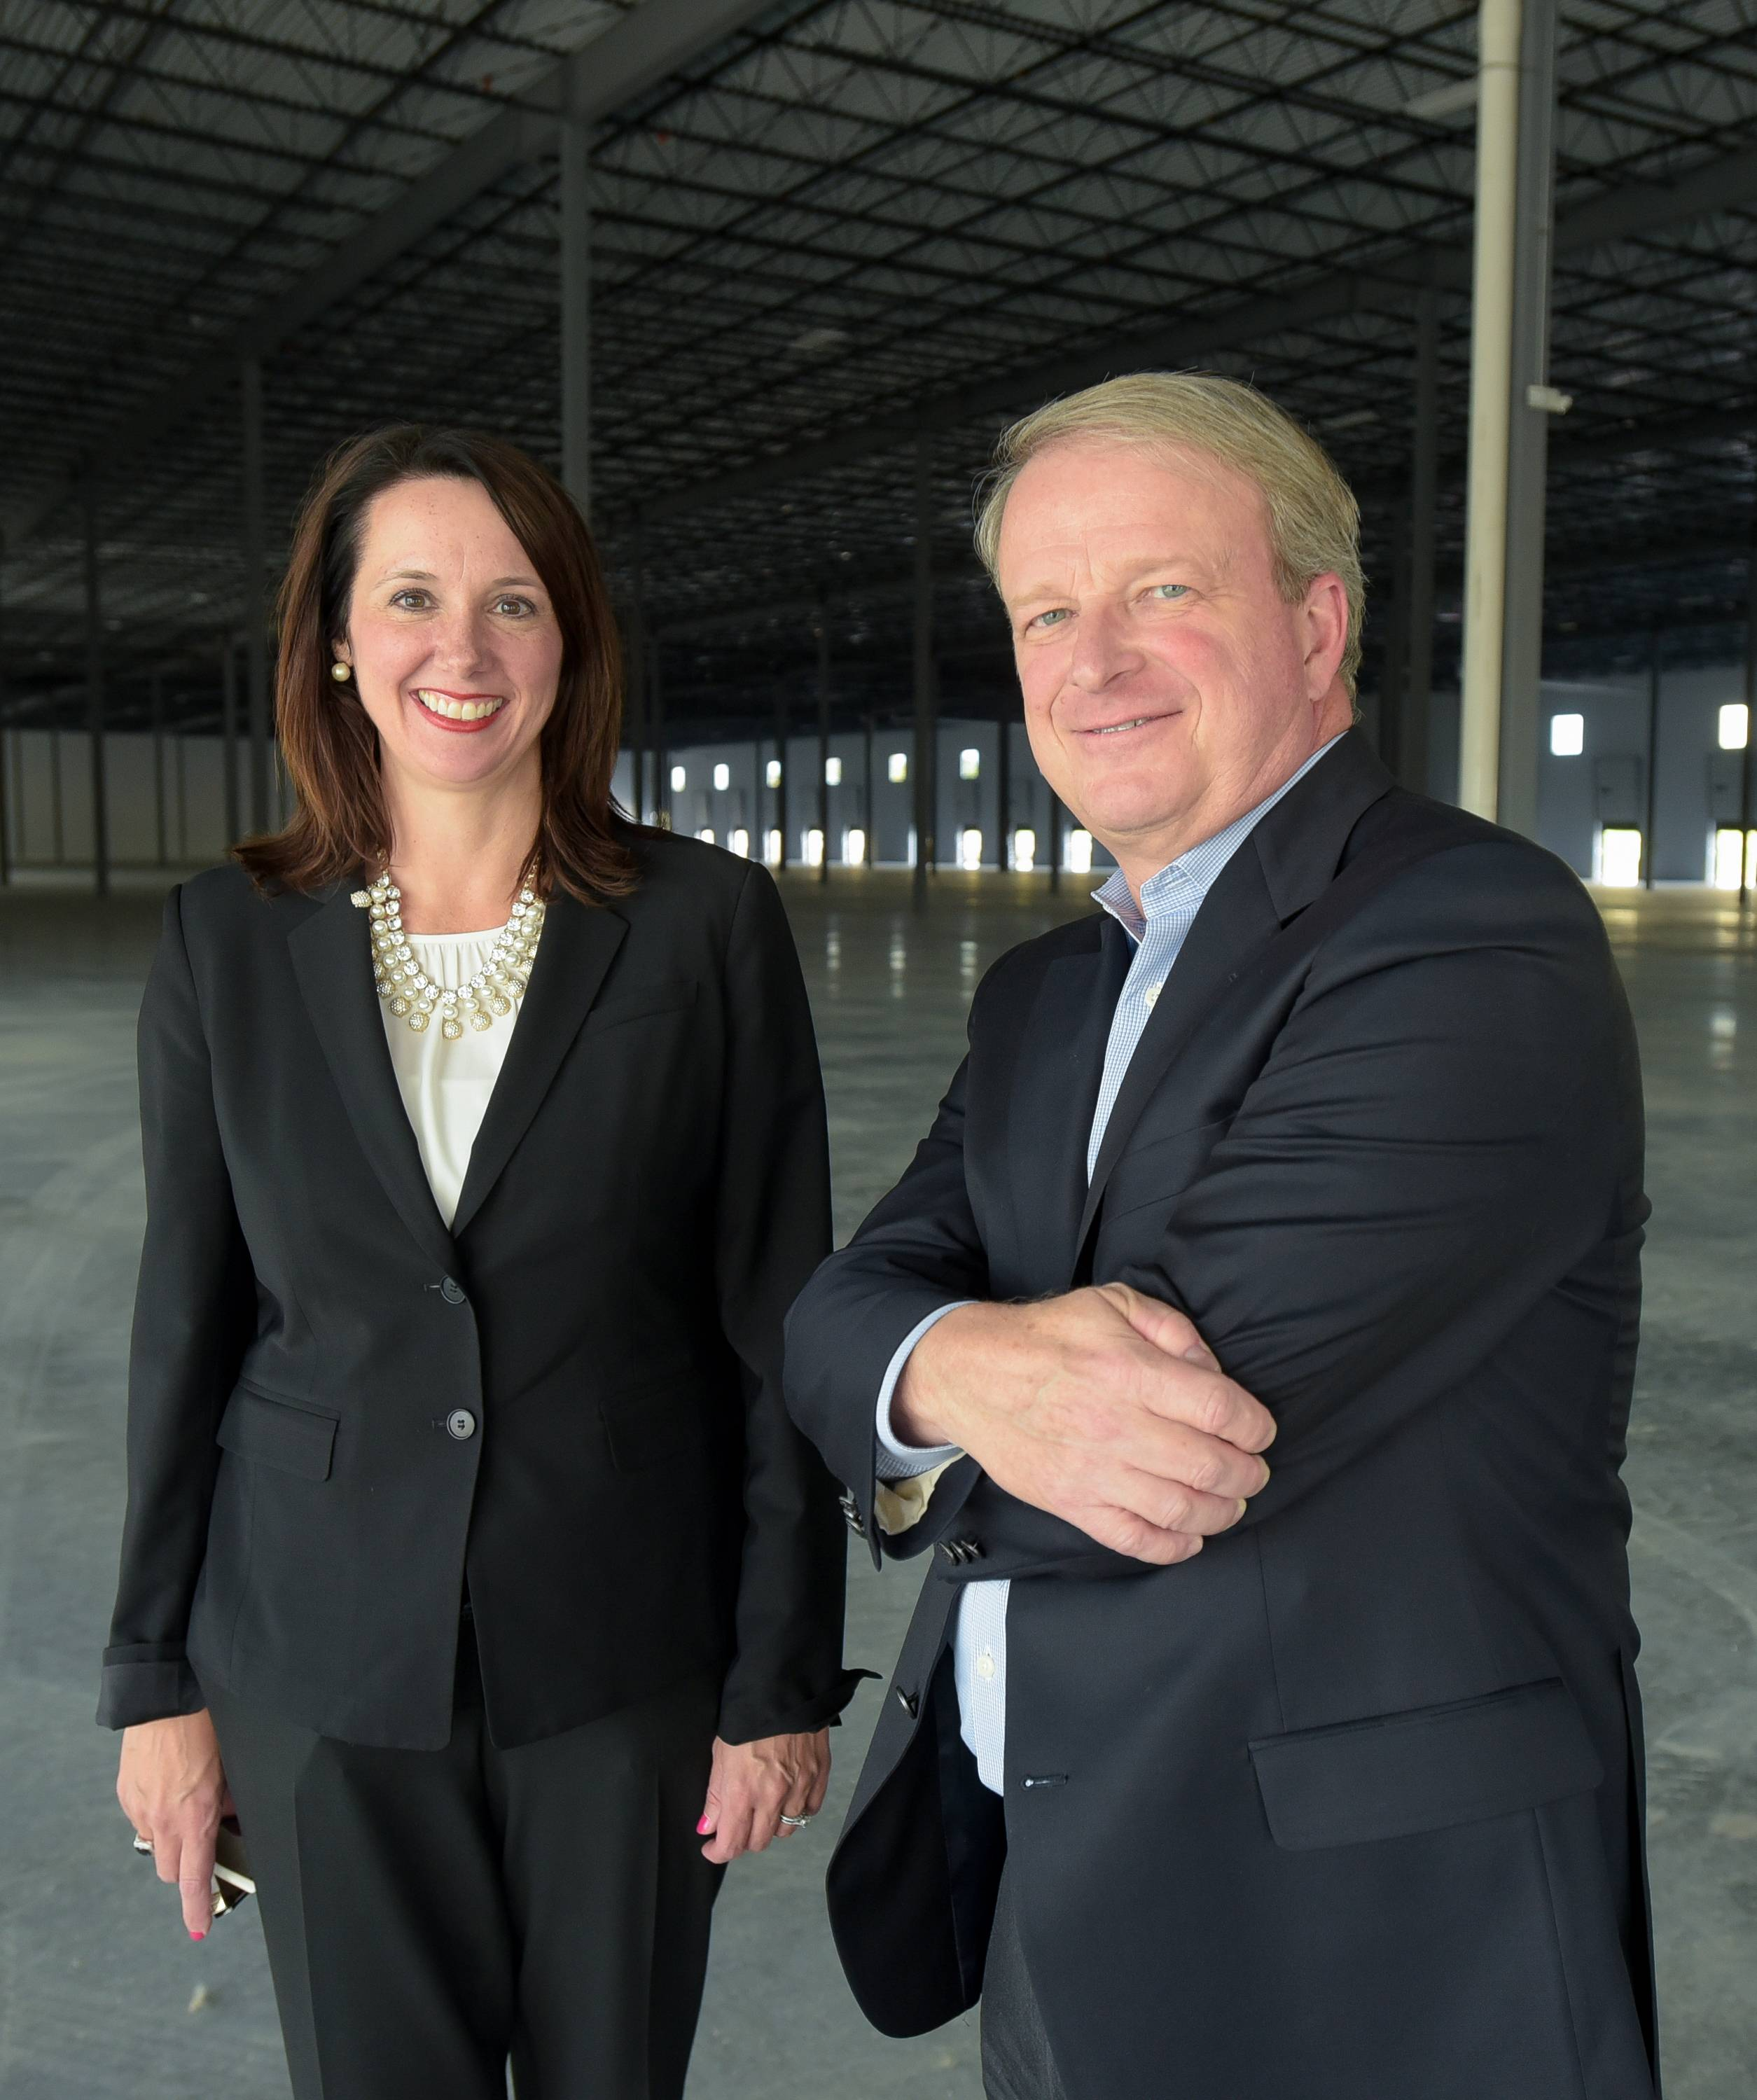 Traci Buckingham Payette, senior vice president of CBRE, and Don Schoenheider of Hillwood pose in a Romeoville Commerce Center building.